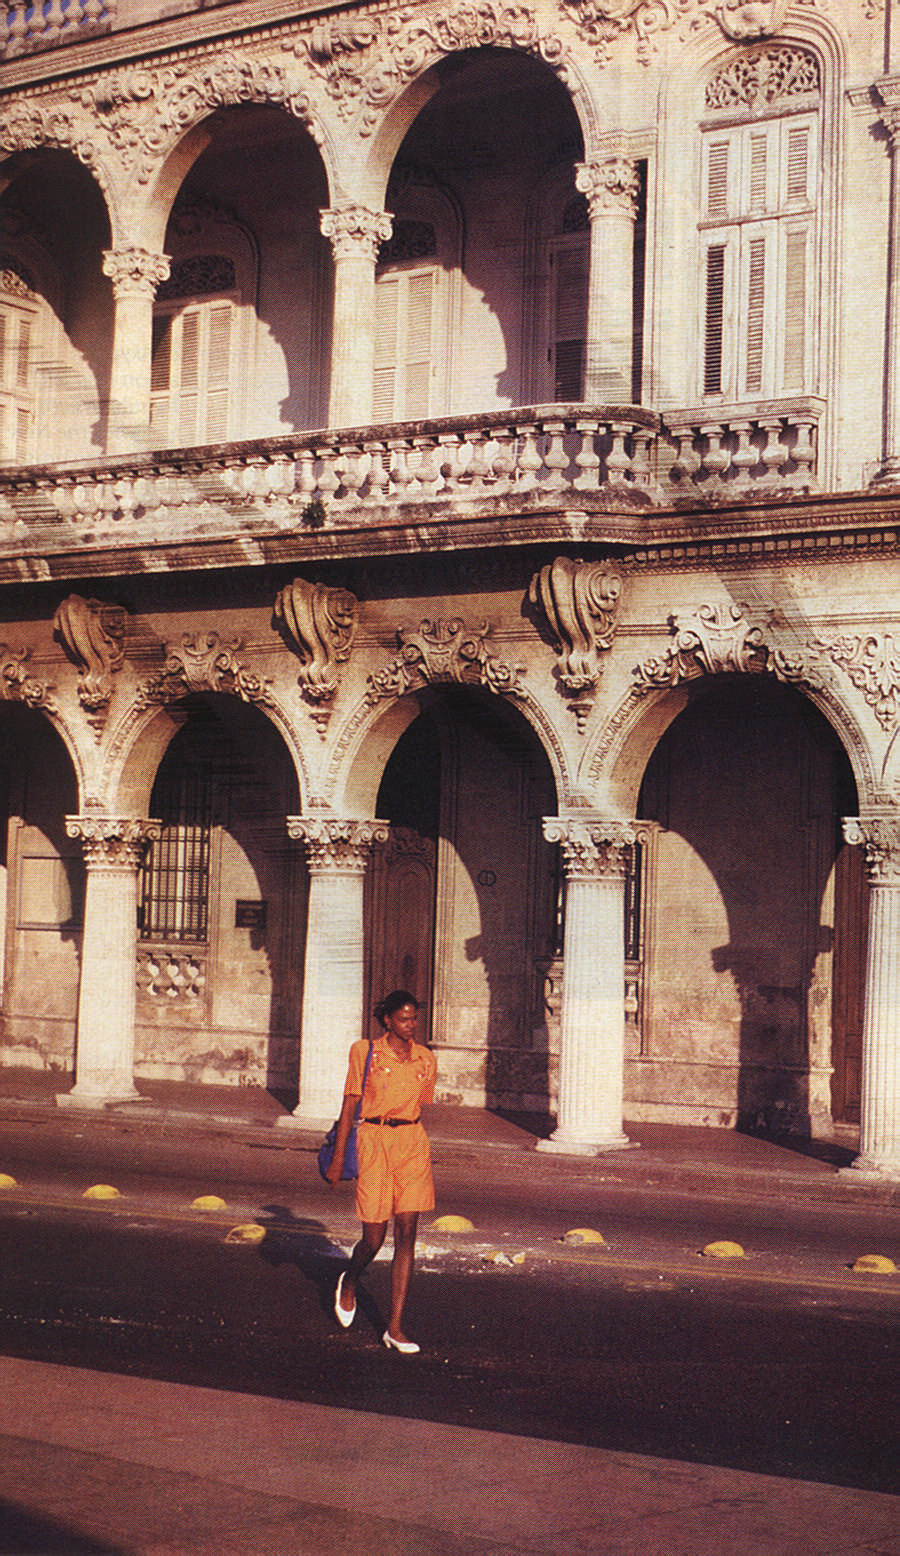 In Old Havana. Photograph by Christopher Cozier